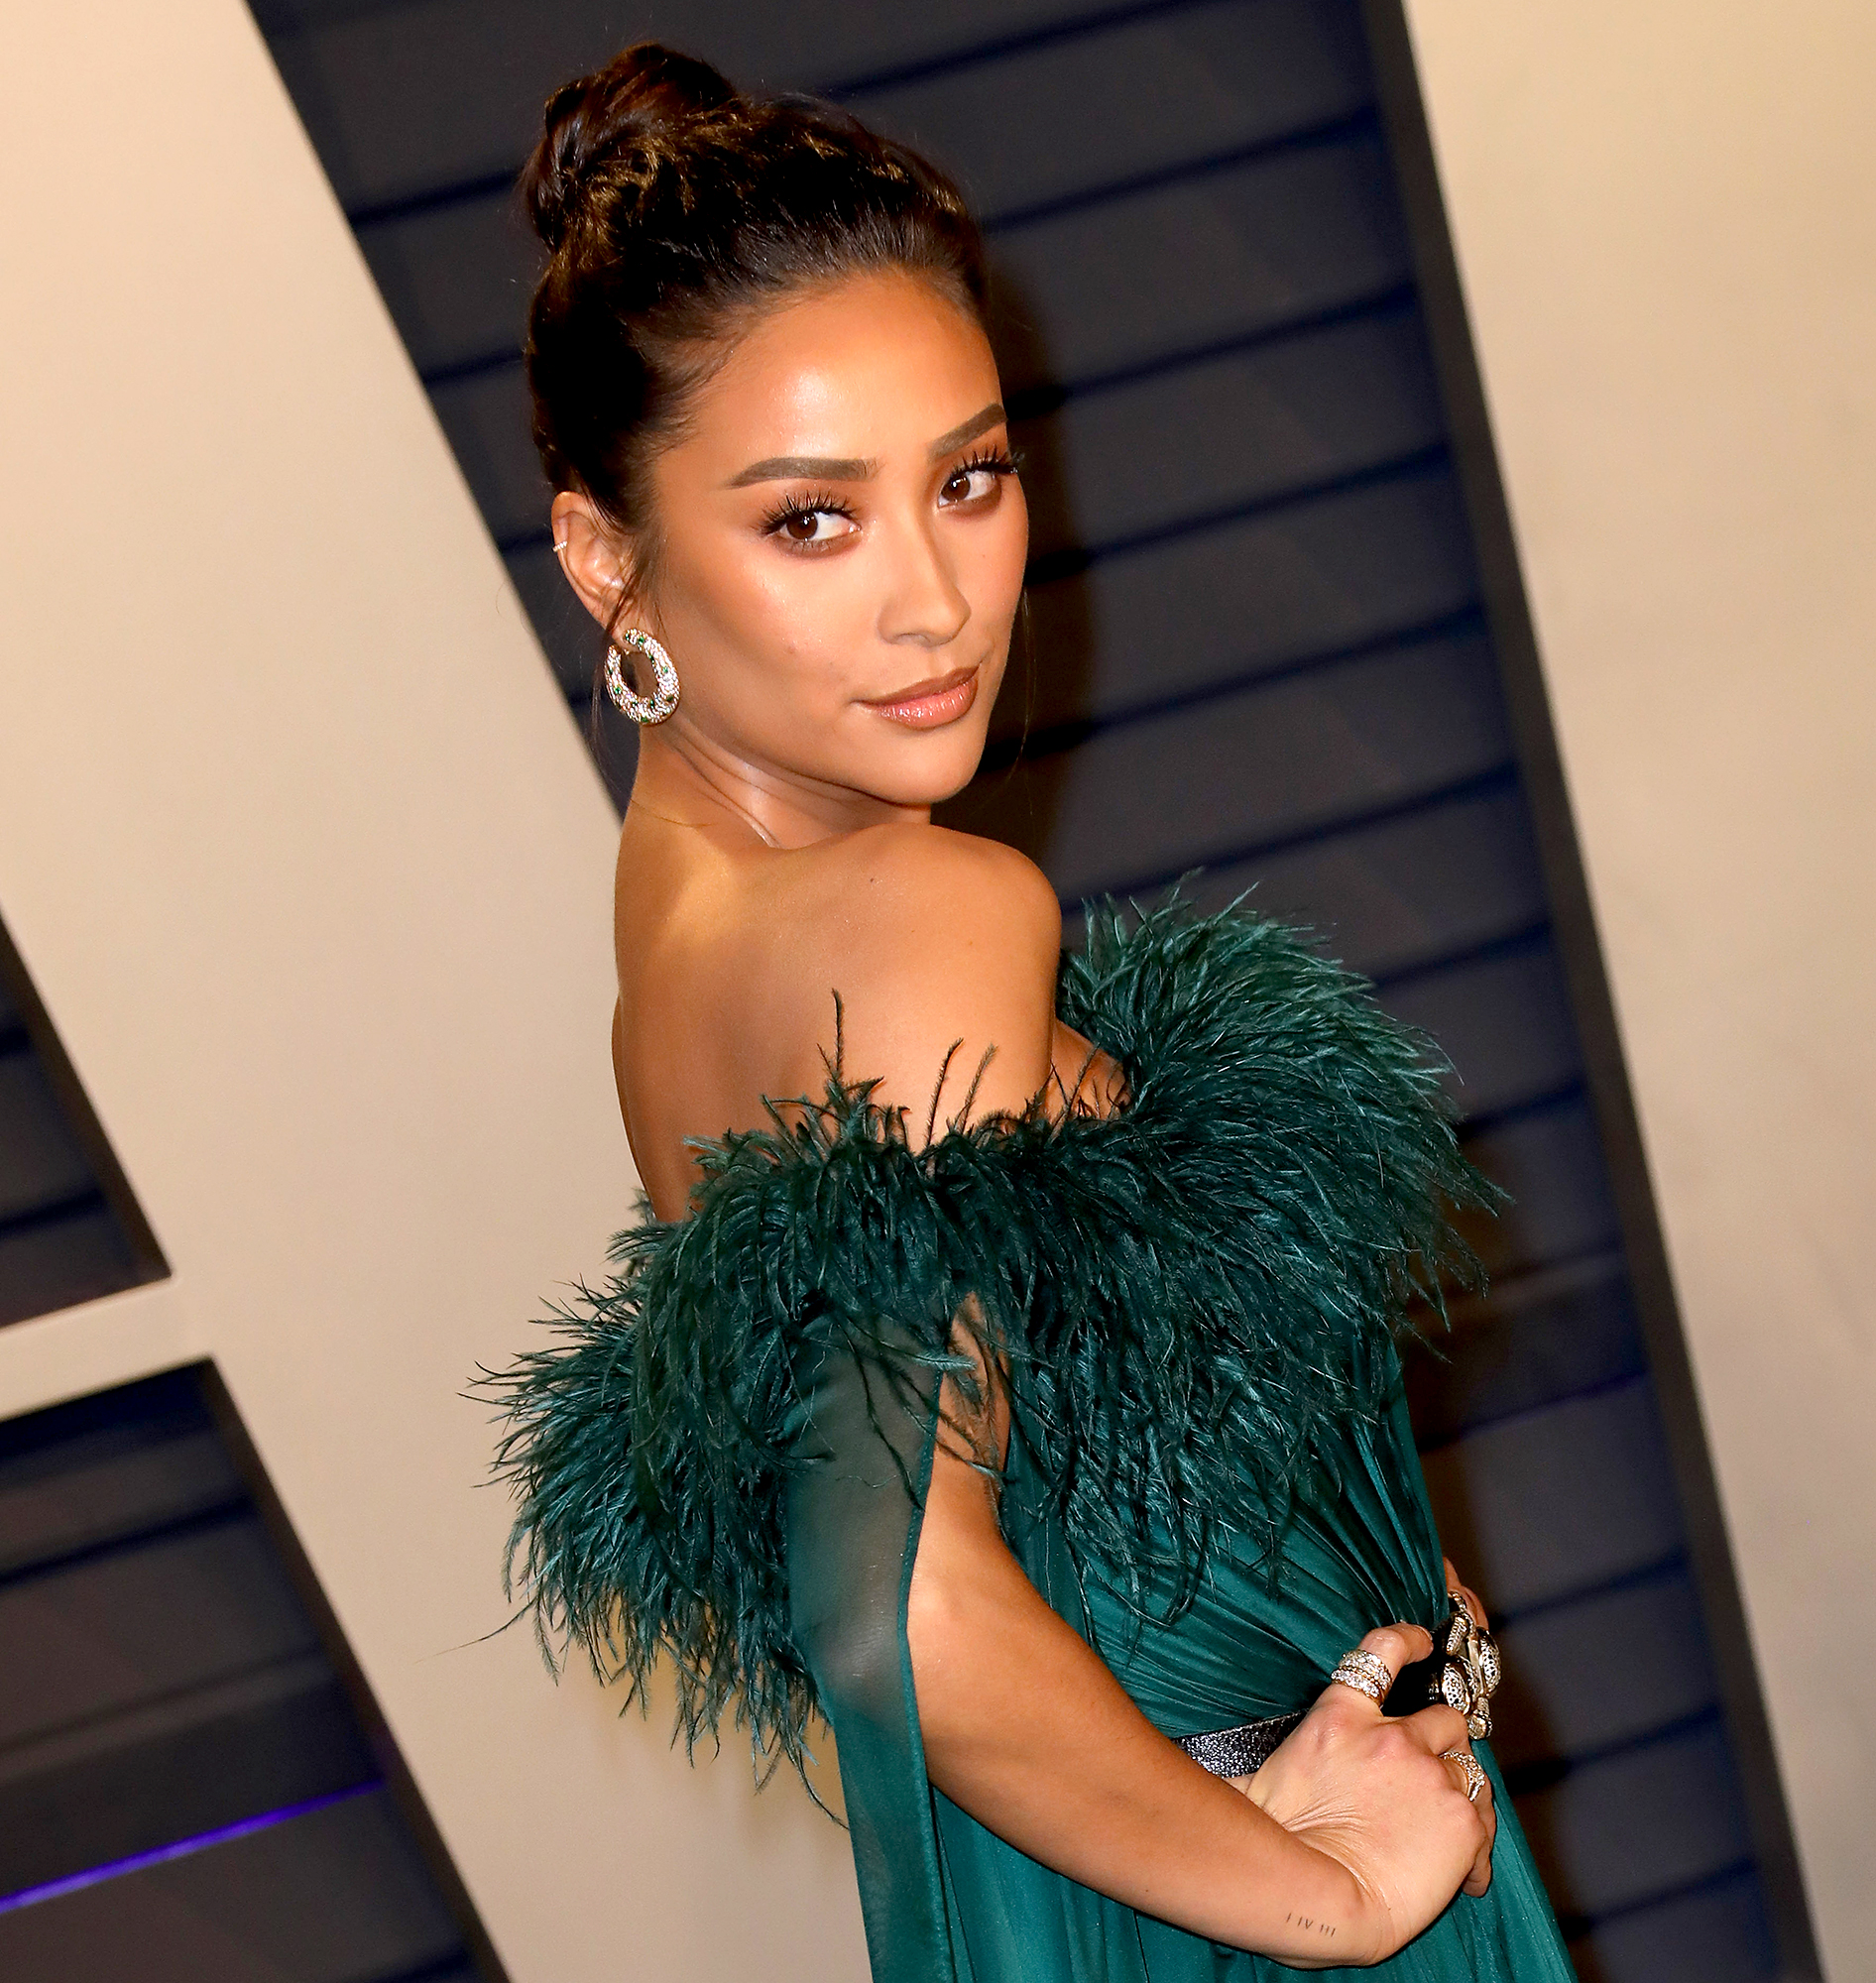 Pregnant-Shay-Mitchell-Responds-to-Criticism-of-Her-Meal - Shay Mitchell attends the 2019 Vanity Fair Oscar Party hosted by Radhika Jones at Wallis Annenberg Center for the Performing Arts on February 24, 2019 in Beverly Hills, California.